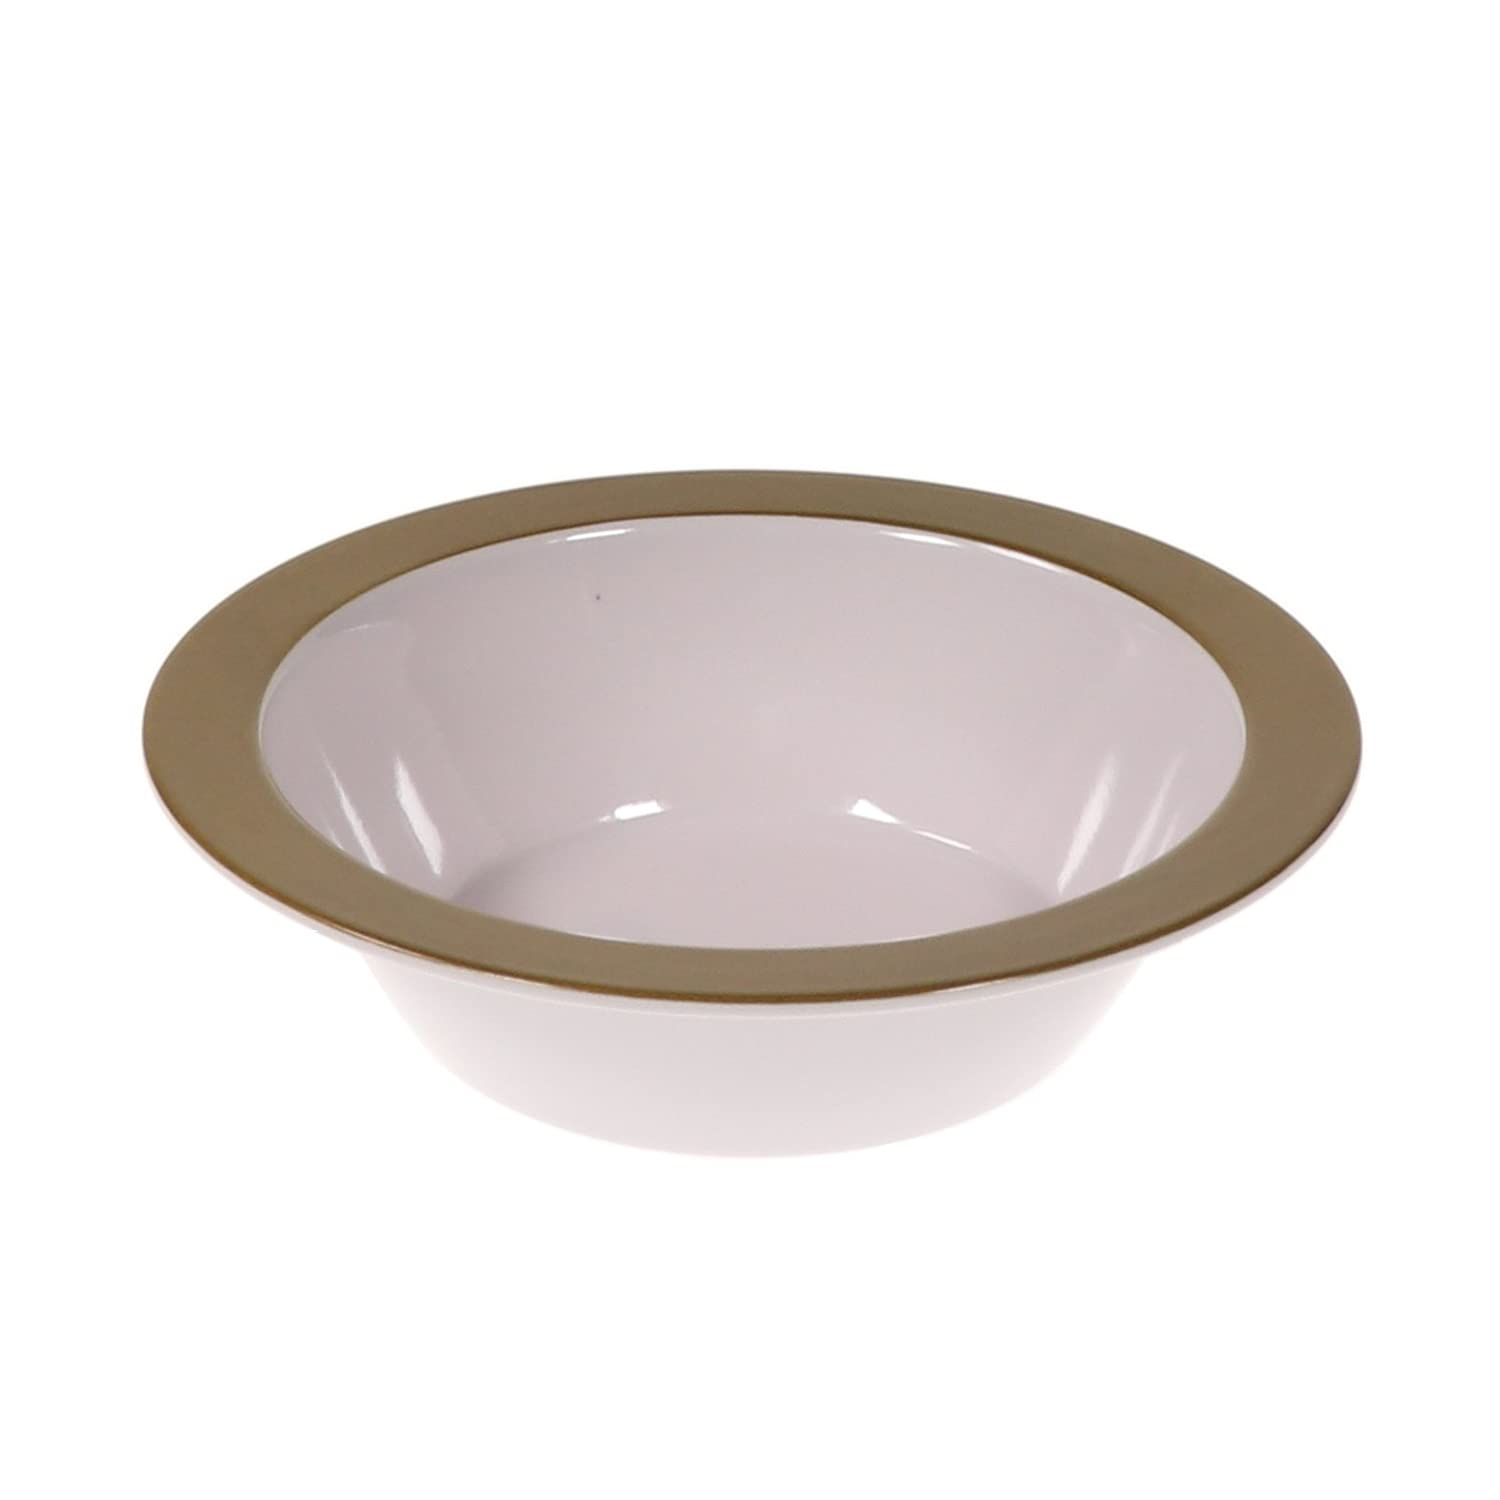 8.5 Salad Plate, Gold Classic Wide Rim Design Great Paper Plate Replacement! Indoor//Outdoor Reusable Dinnerware by Unity Handi-Ware 12-Piece Party Bulk Pack Signature Melamine Blend Set